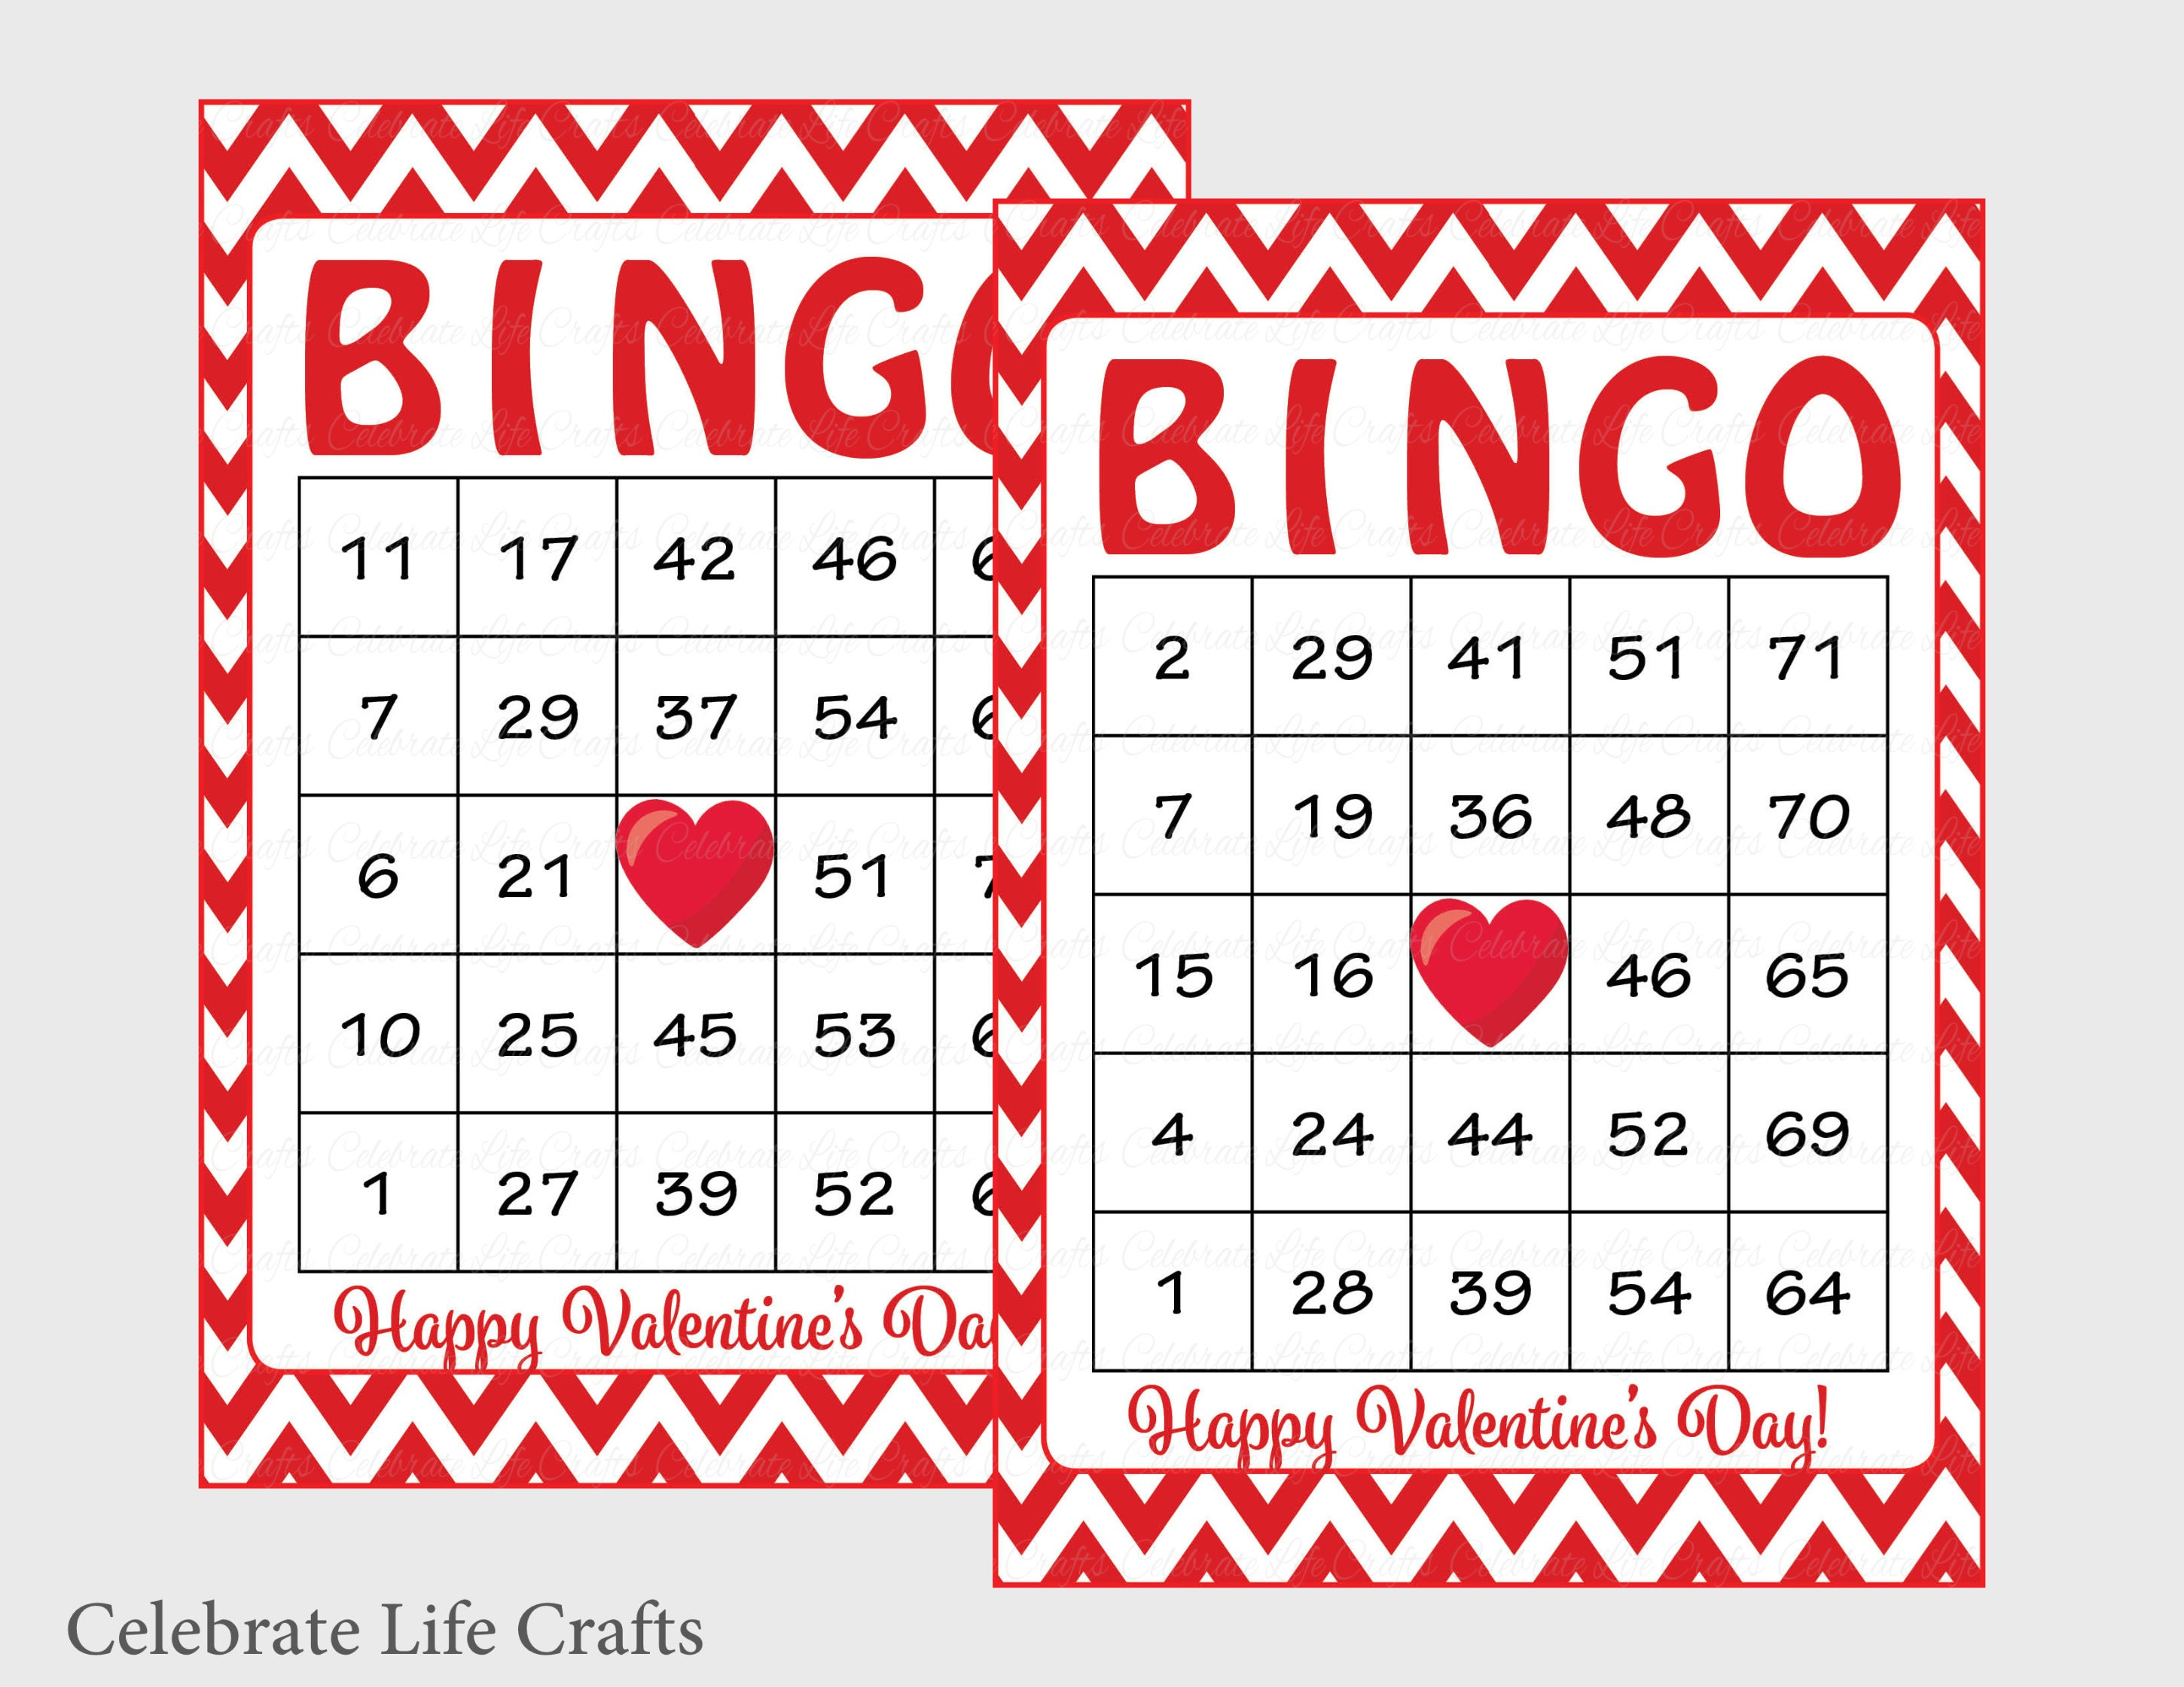 picture relating to Printable Valentine Bingo Cards titled 60 Valentines Bingo Playing cards - Printable Valentine Bingo Playing cards - Prompt Down load - Valentines Working day Activity for little ones - Purple Chevrons V1006